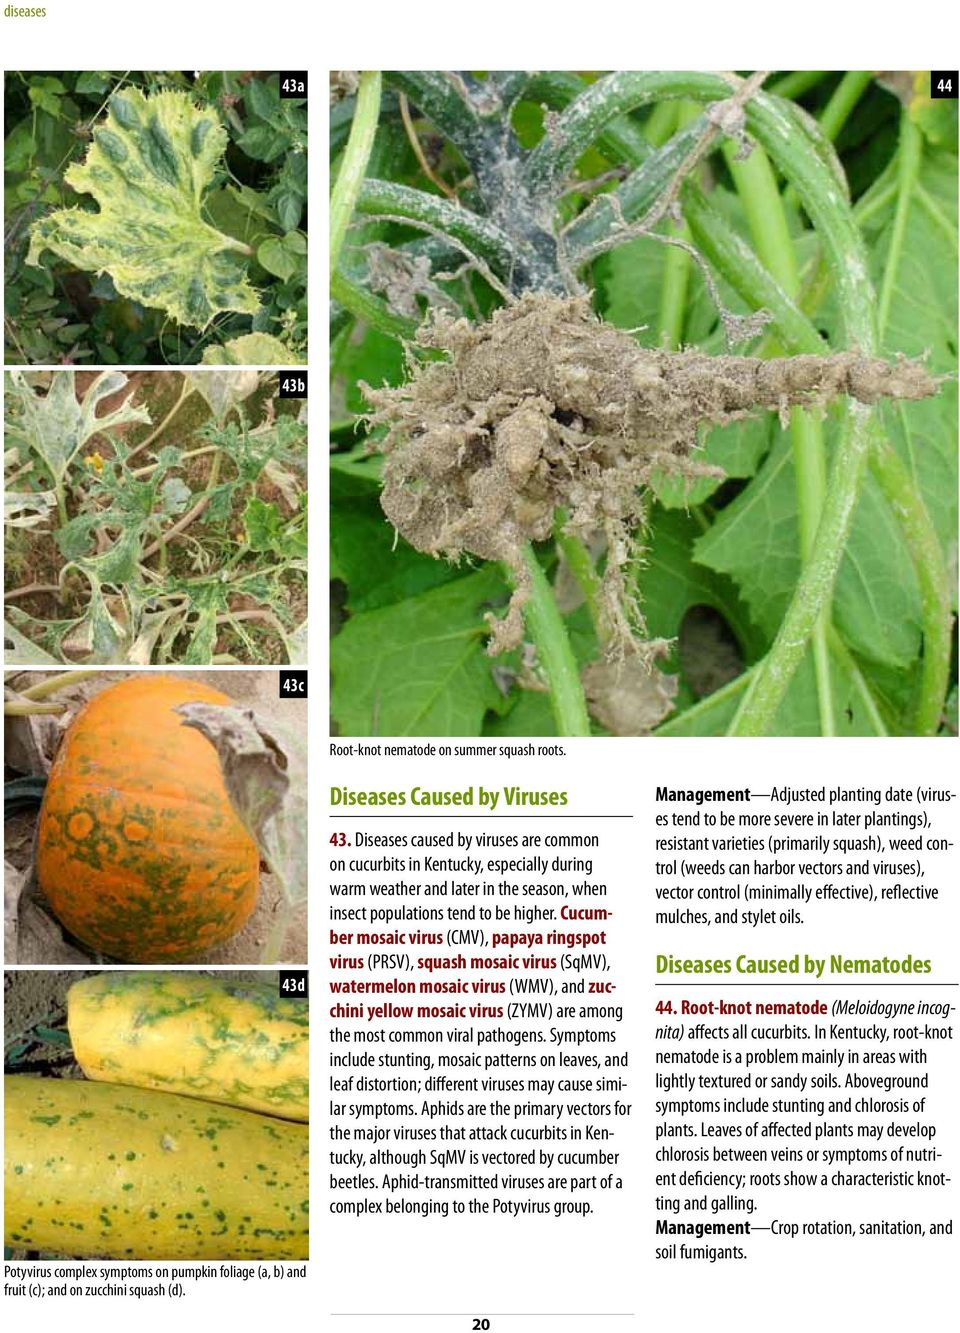 Cucumber mosaic virus (CMV), papaya ringspot virus (PRSV), squash mosaic virus (SqMV), watermelon mosaic virus (WMV), and zucchini yellow mosaic virus (ZYMV) are among the most common viral pathogens.